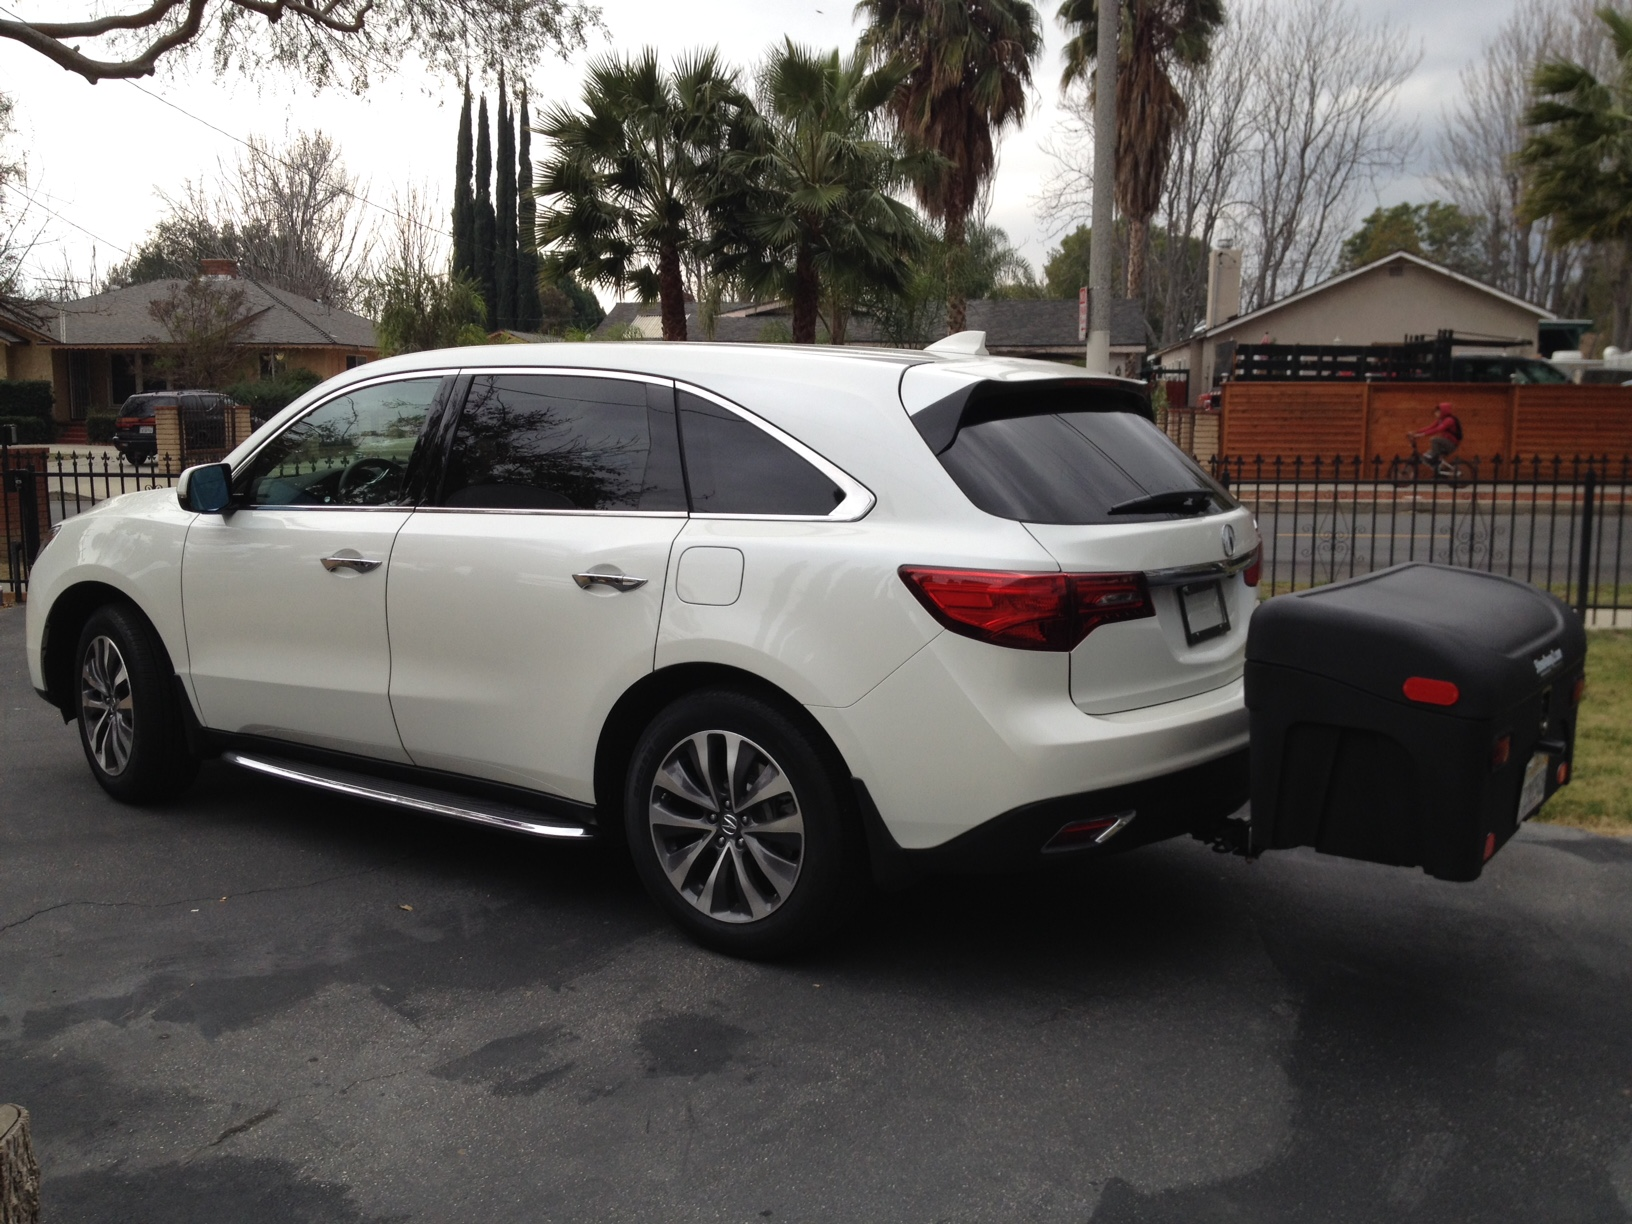 69457d1424634238 preferred after market trailer hitch 2015 img_3229 preferred after market trailer hitch for 2015? acura mdx forum